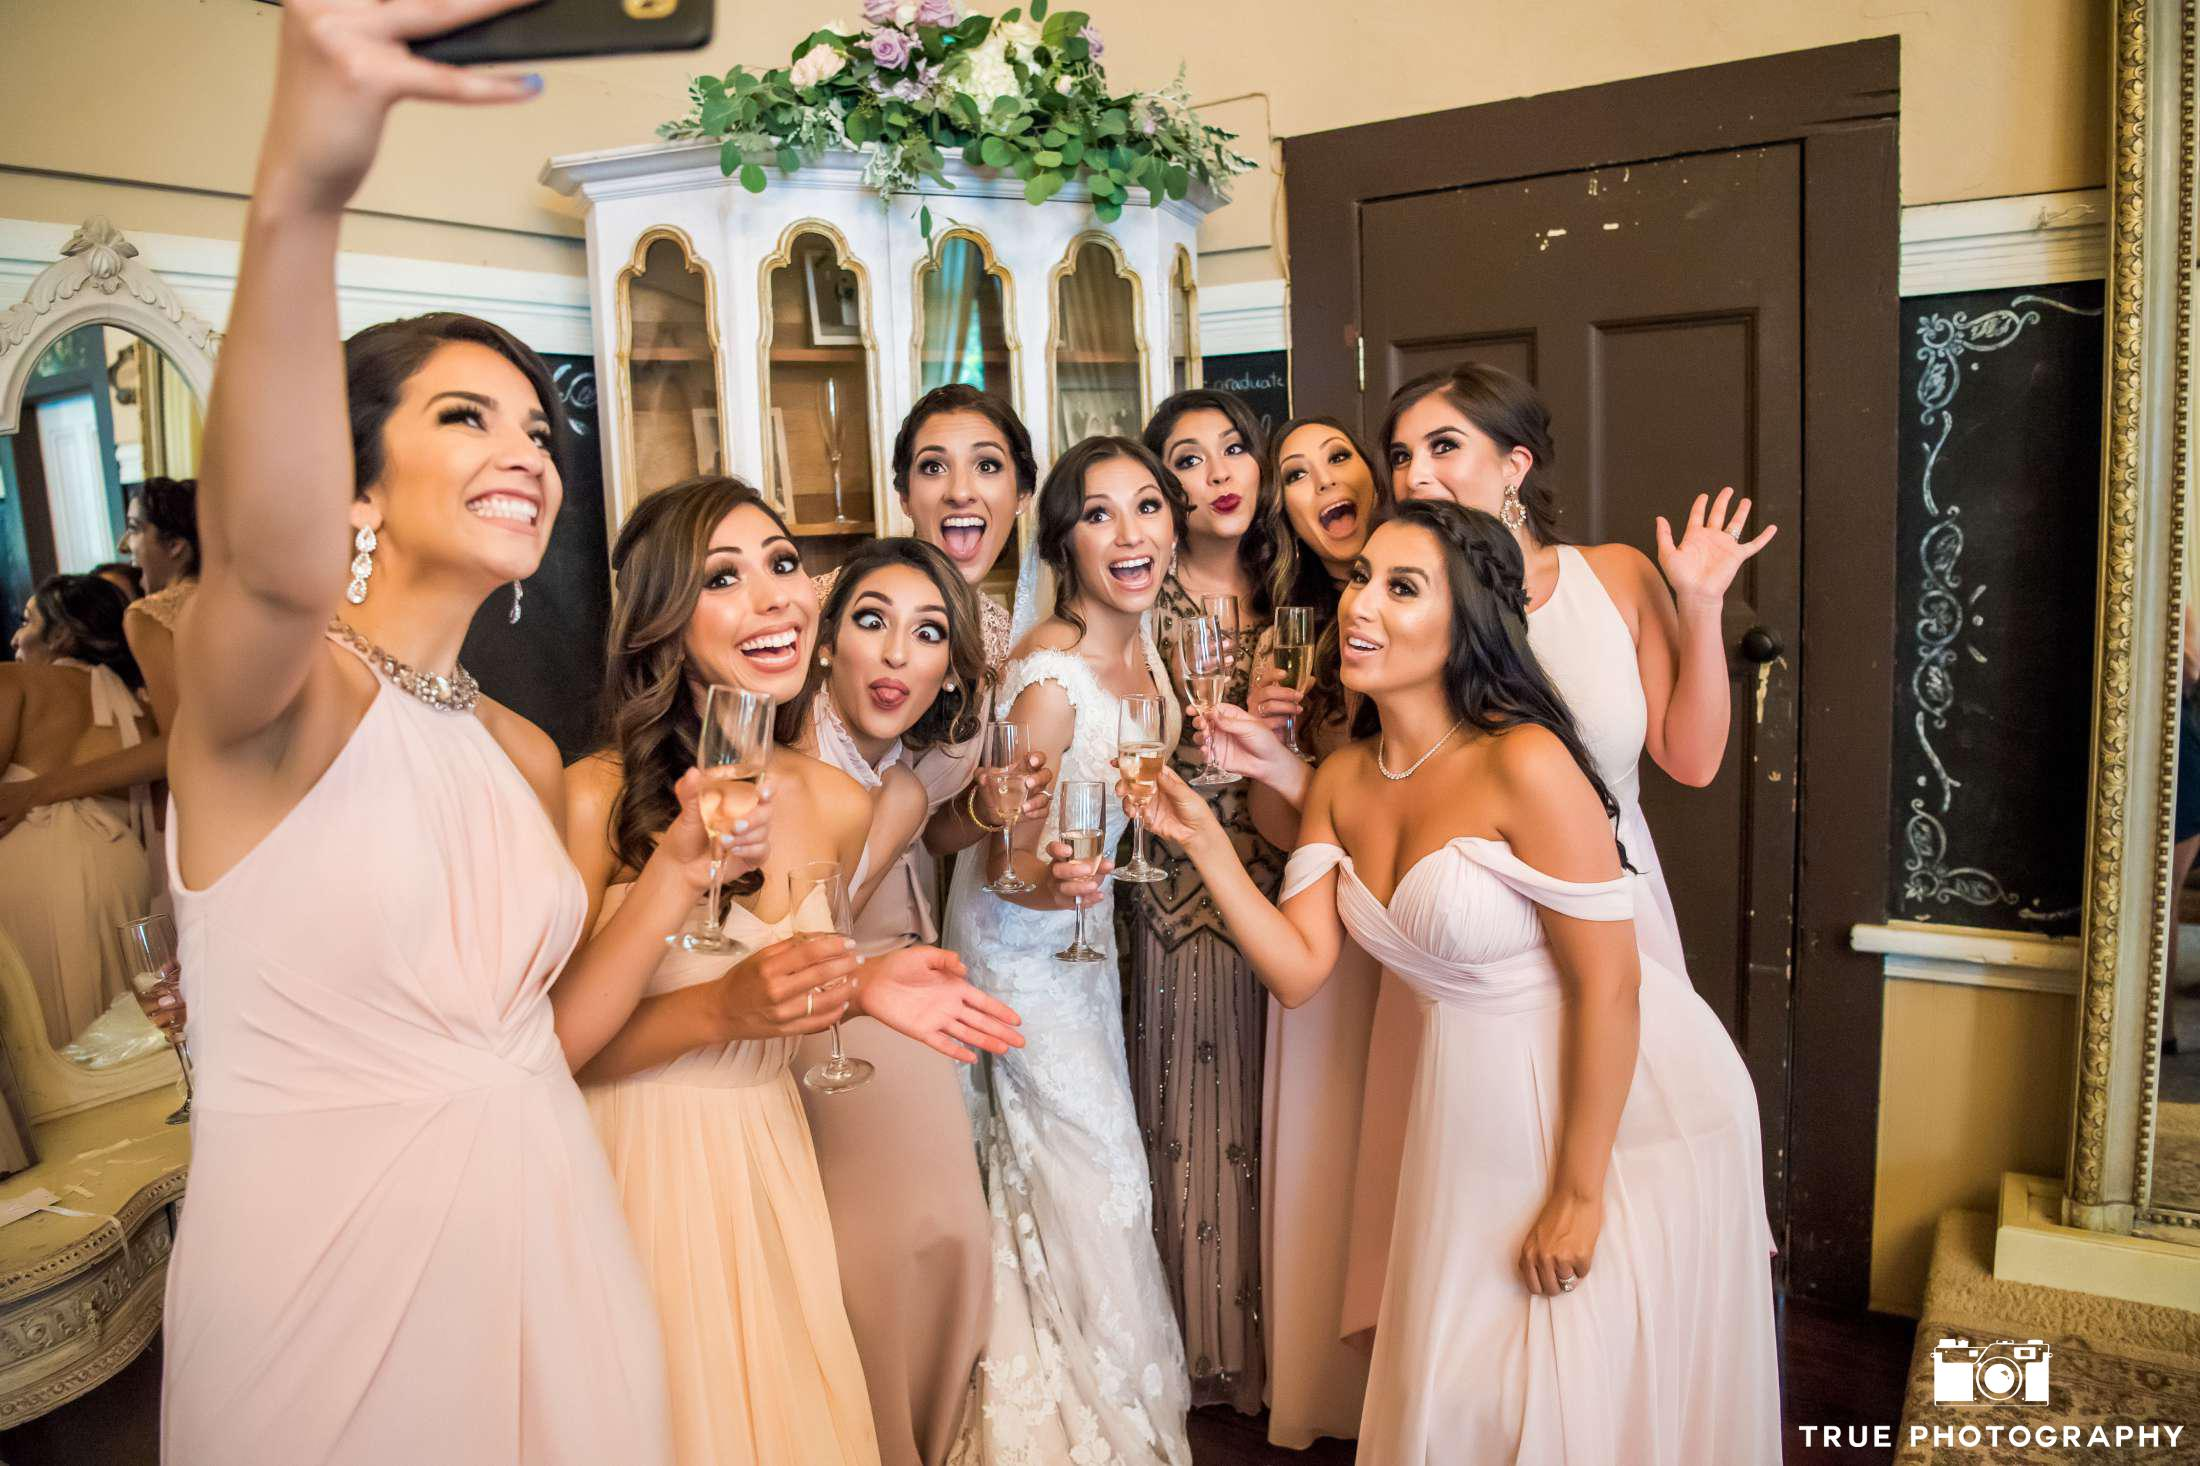 Silly Bridal Party Selfie Photos on Morning of Wedding